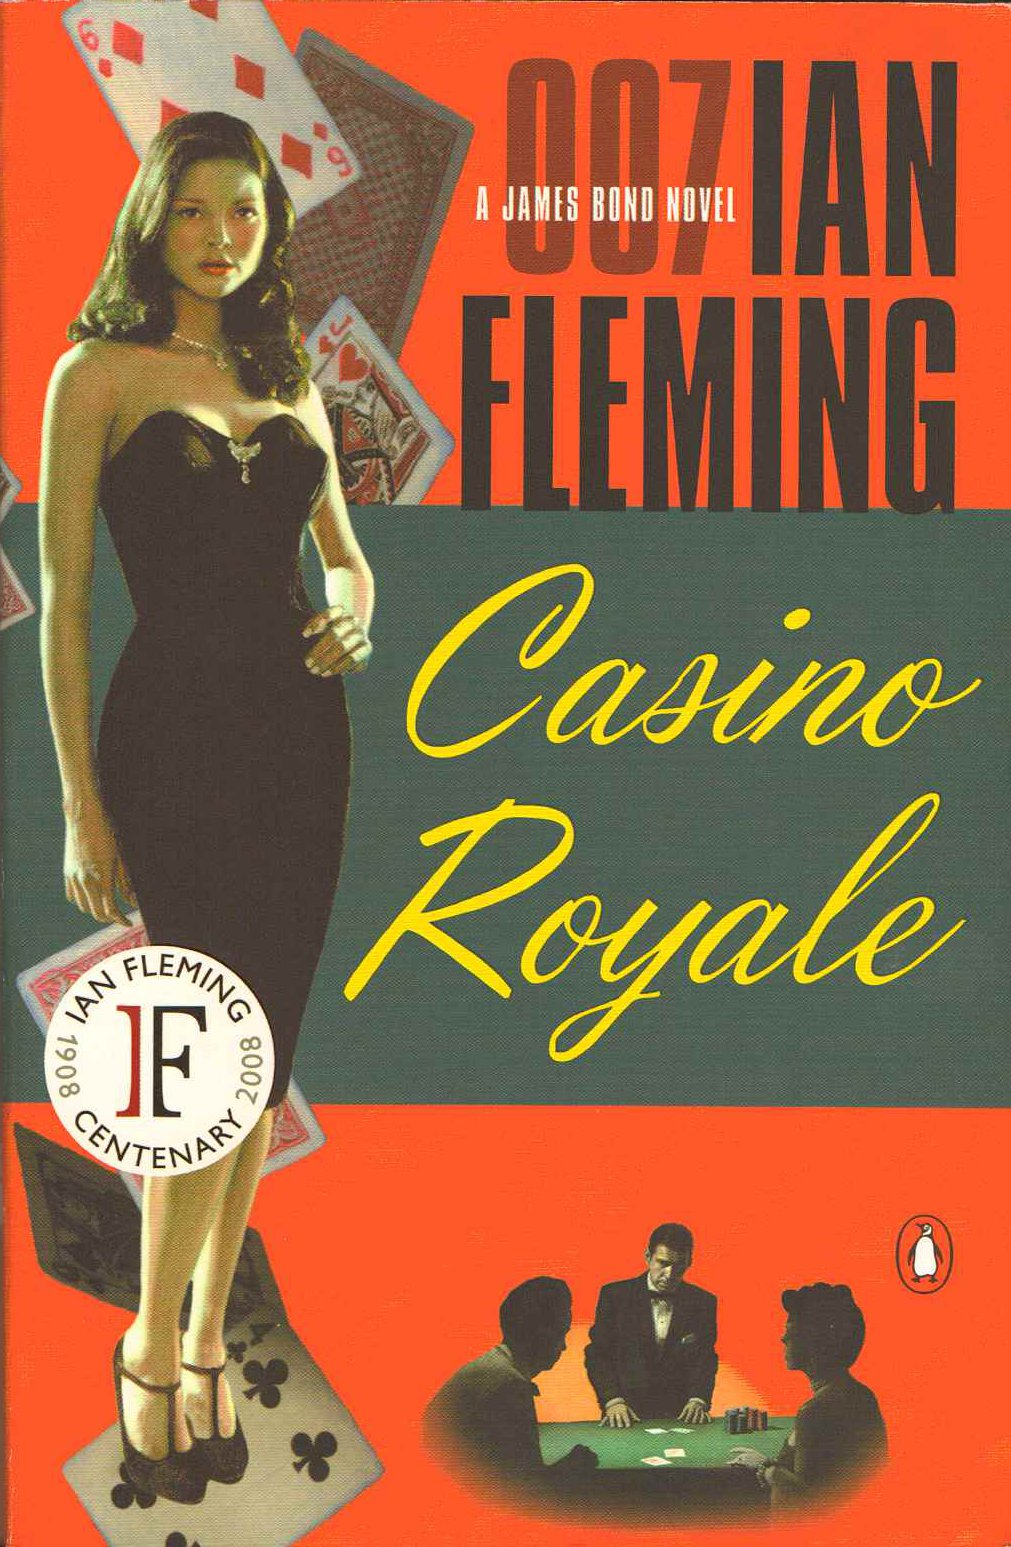 Book by casino fleming ian royale what games do casinos make the most money on